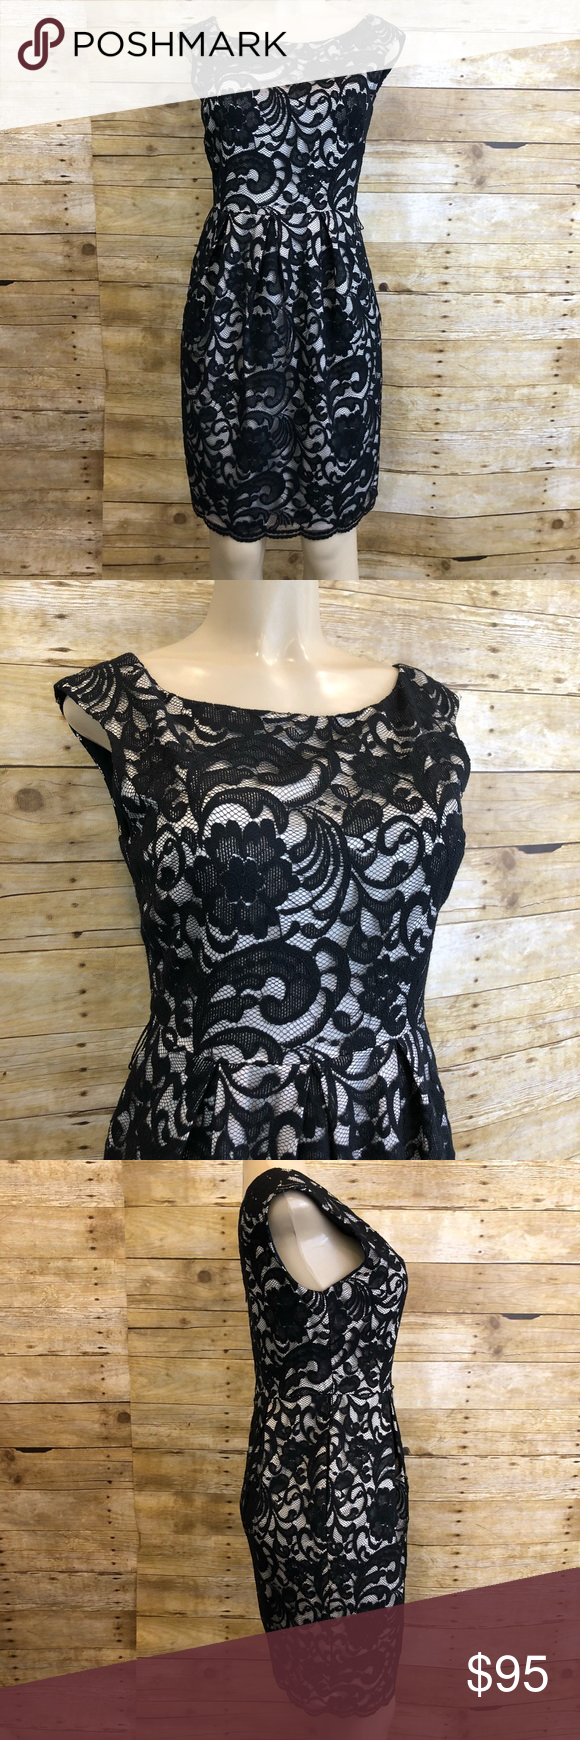 Nwt eliza j black lace formal dress size nwt lynnetteus